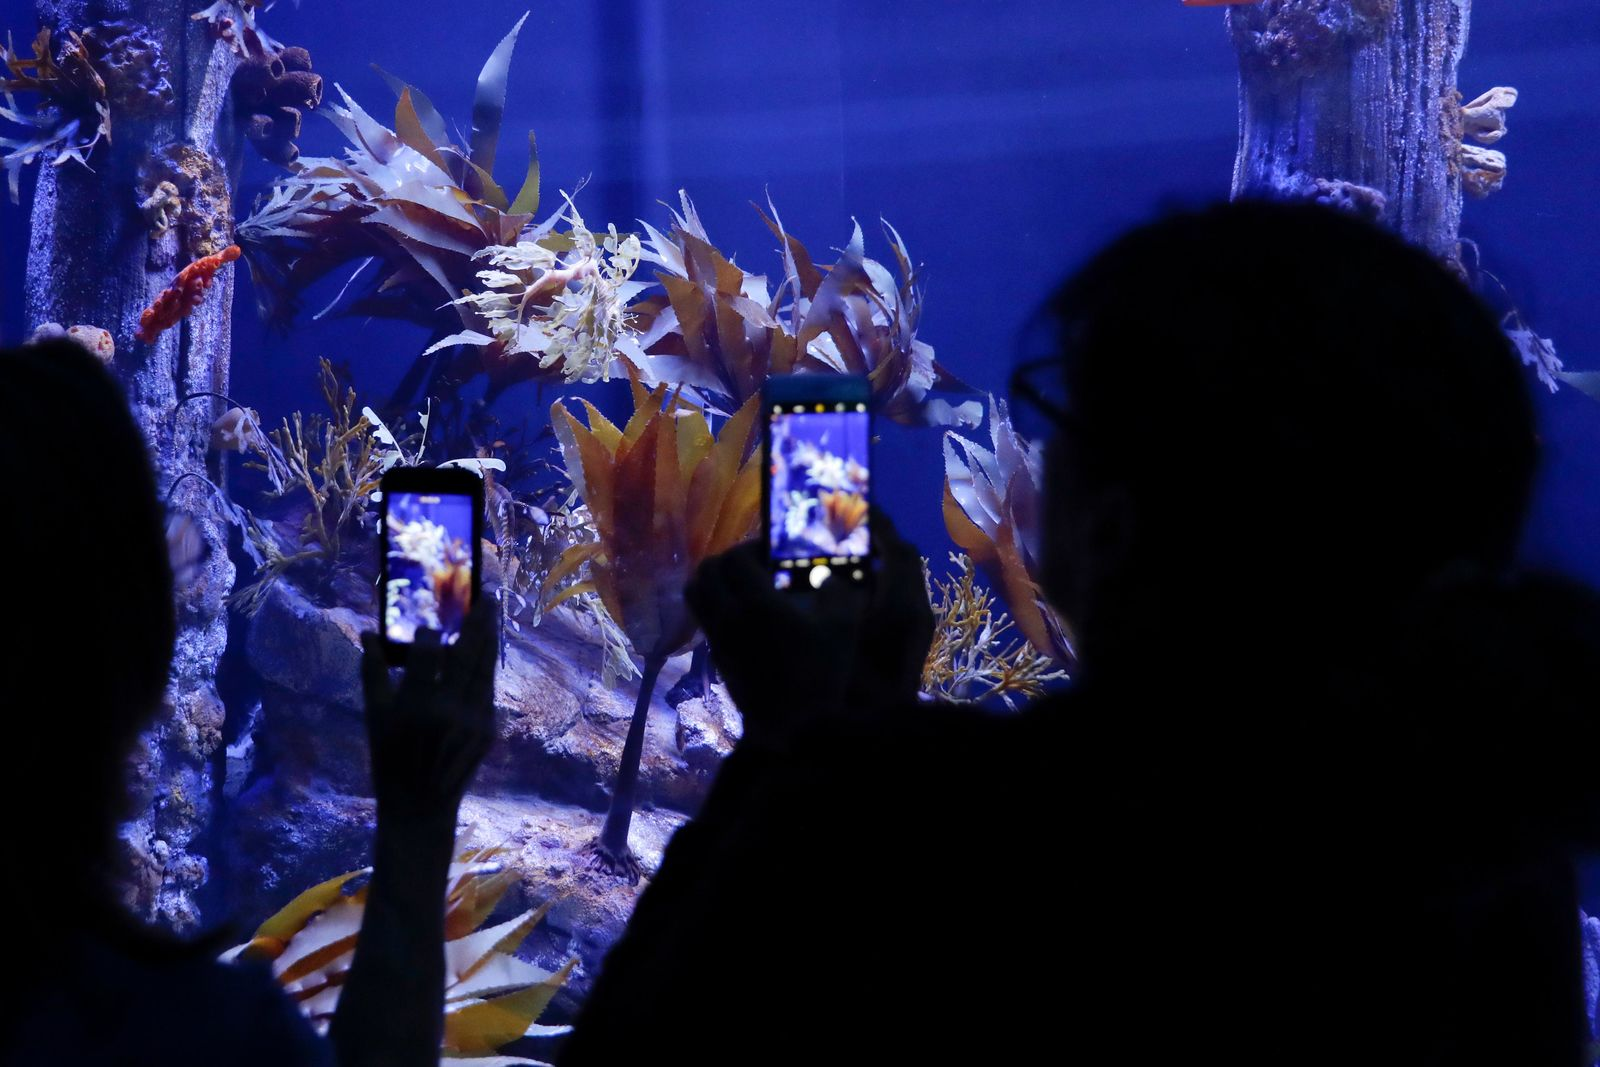 In this Friday, May 17, 2019 photo, visitors record images of sea dragons at the Birch Aquarium at the Scripps Institution of Oceanography at the University of California San Diego in San Diego. . (AP Photo/Gregory Bull)